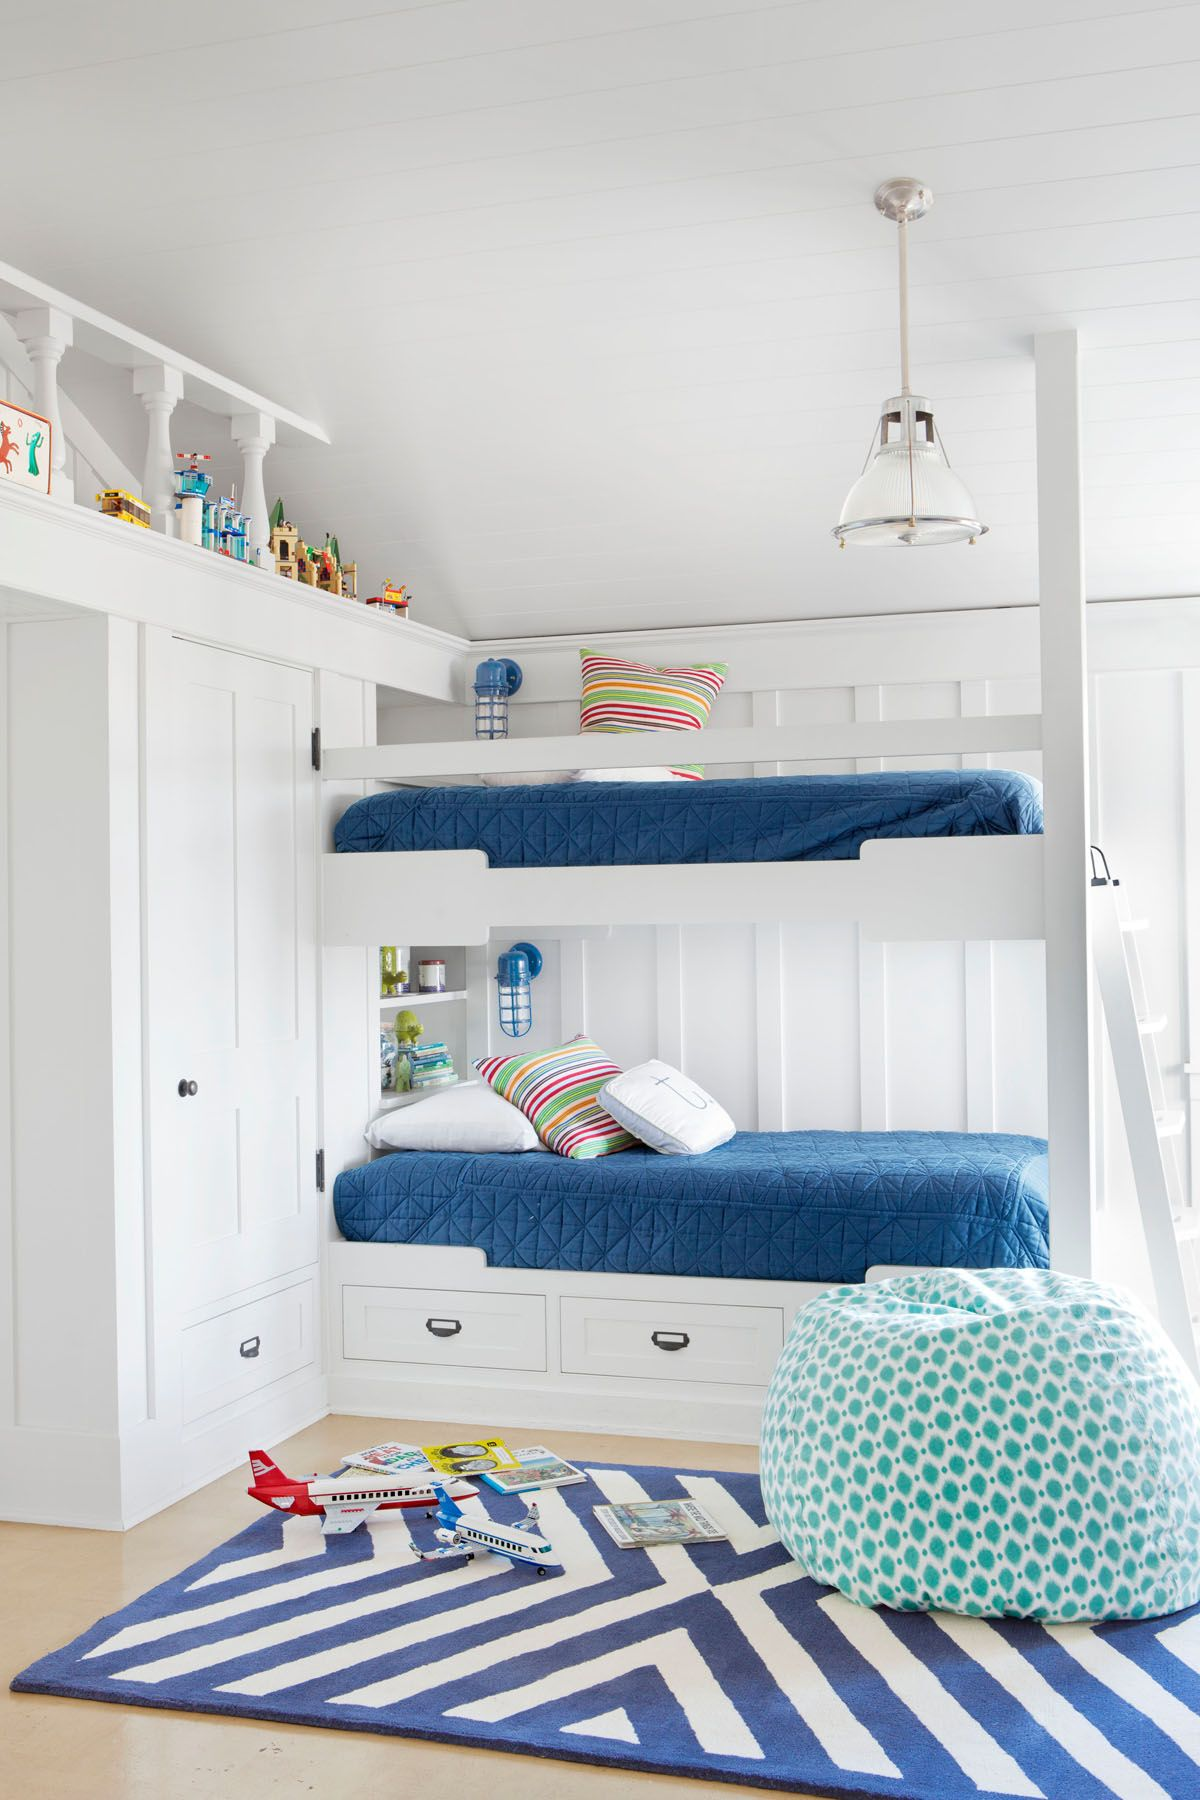 8 Best Boys Bedroom Ideas - Room Decor and Themes for a Little or ...